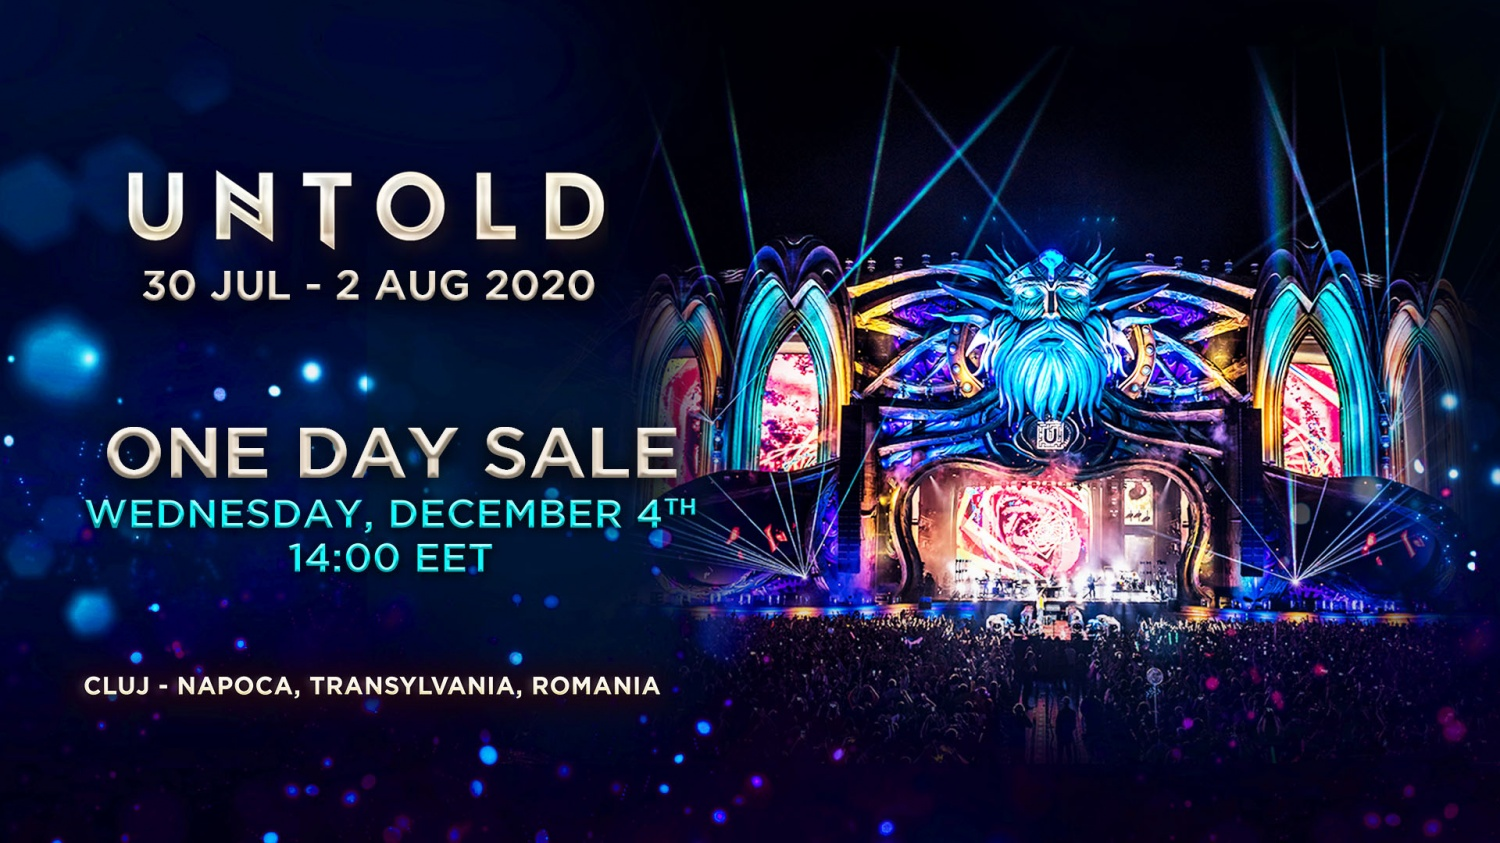 """ONE DAY SALE "" UNTOLD 2020"